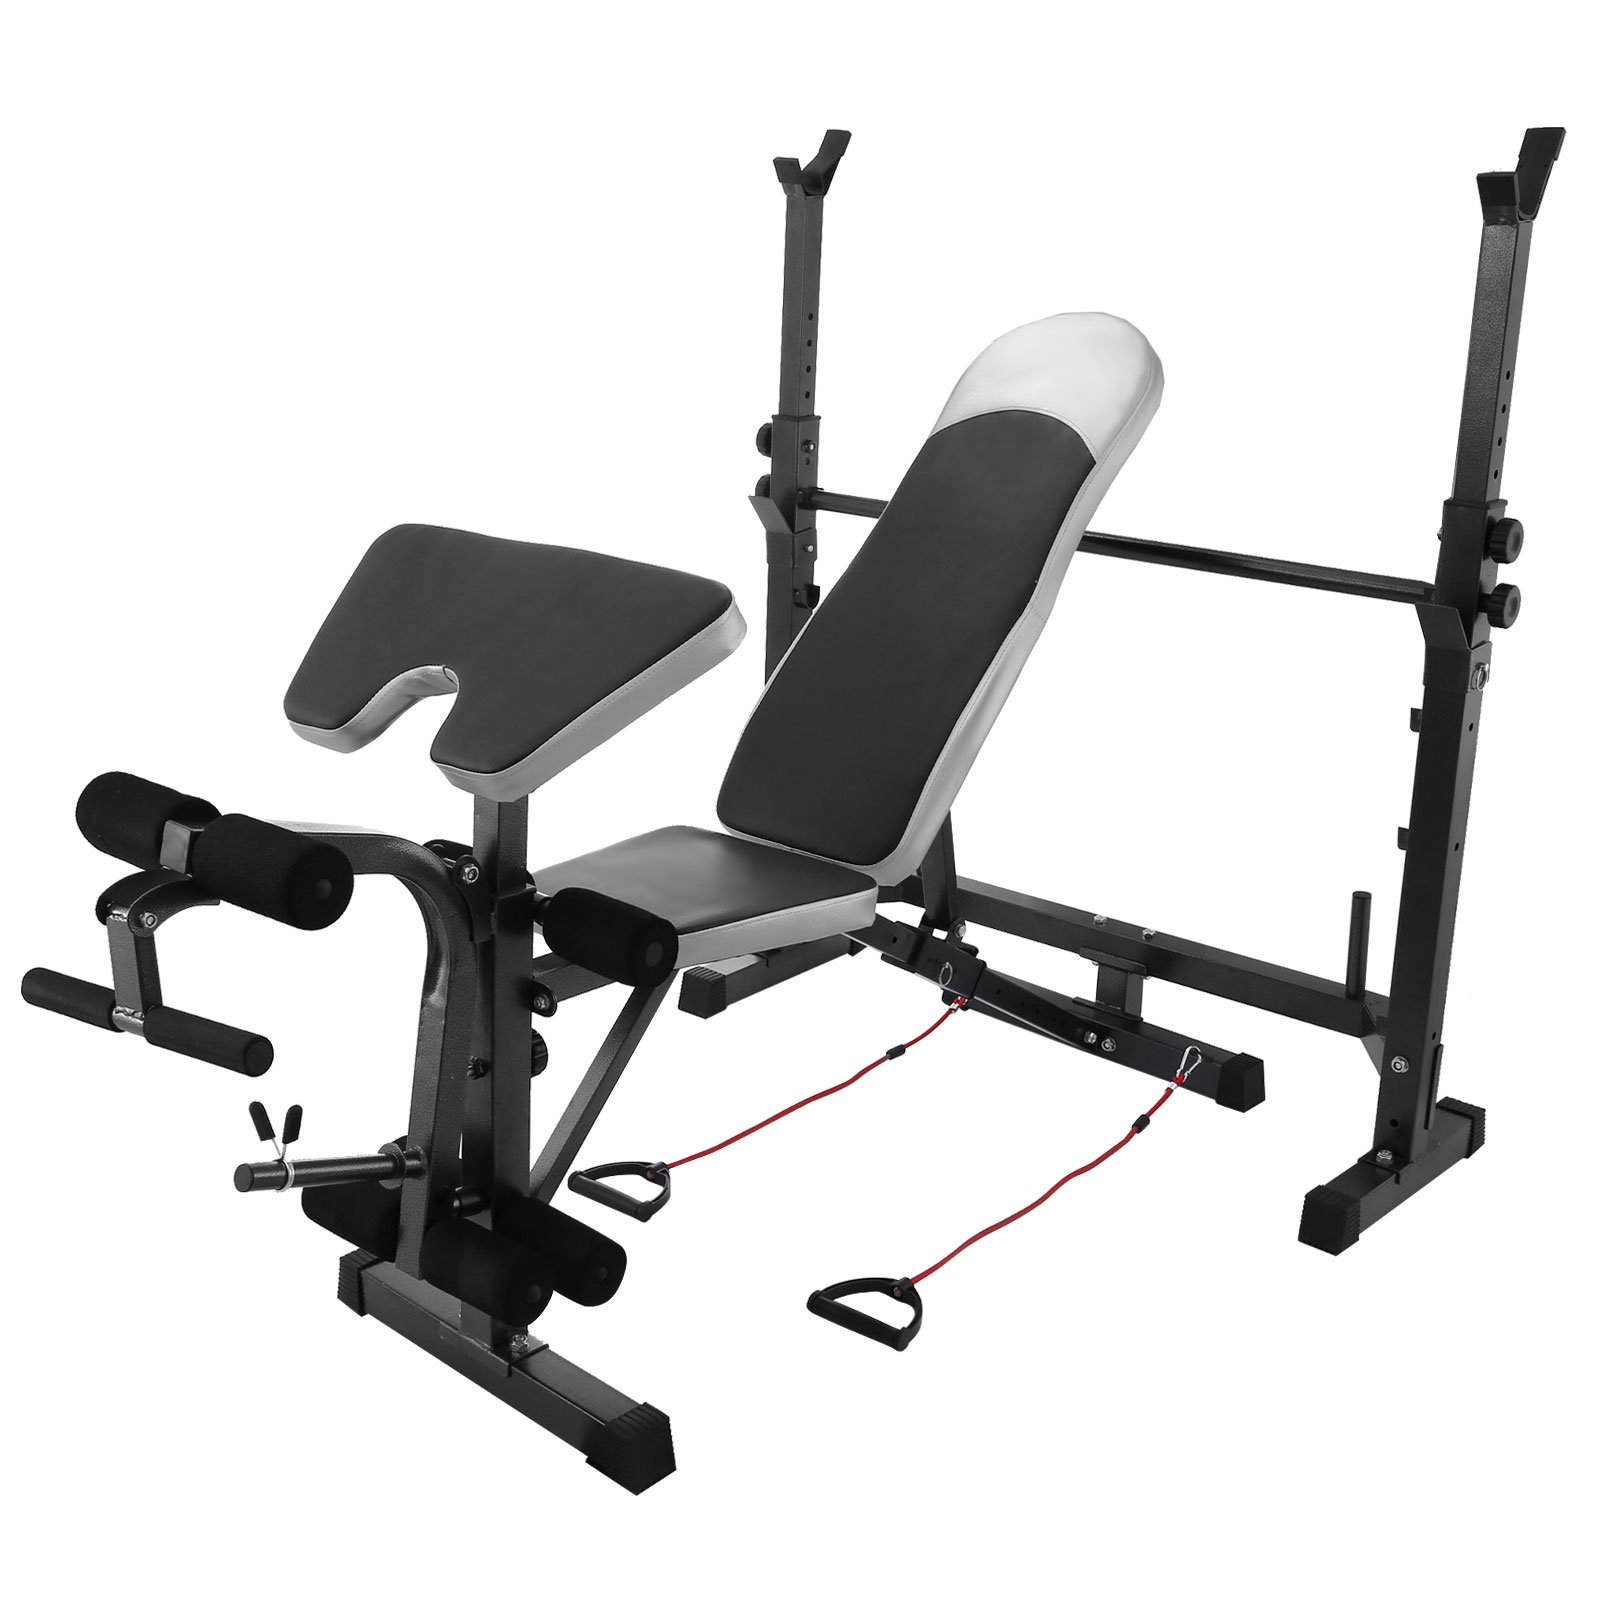 BestEquip Multi-station Weight Bench Adjustable Workout Bench with Leg Extension Incline Flat Decline Sit Up Fitness Equipment for Gym or Home Exercise by BestEquip